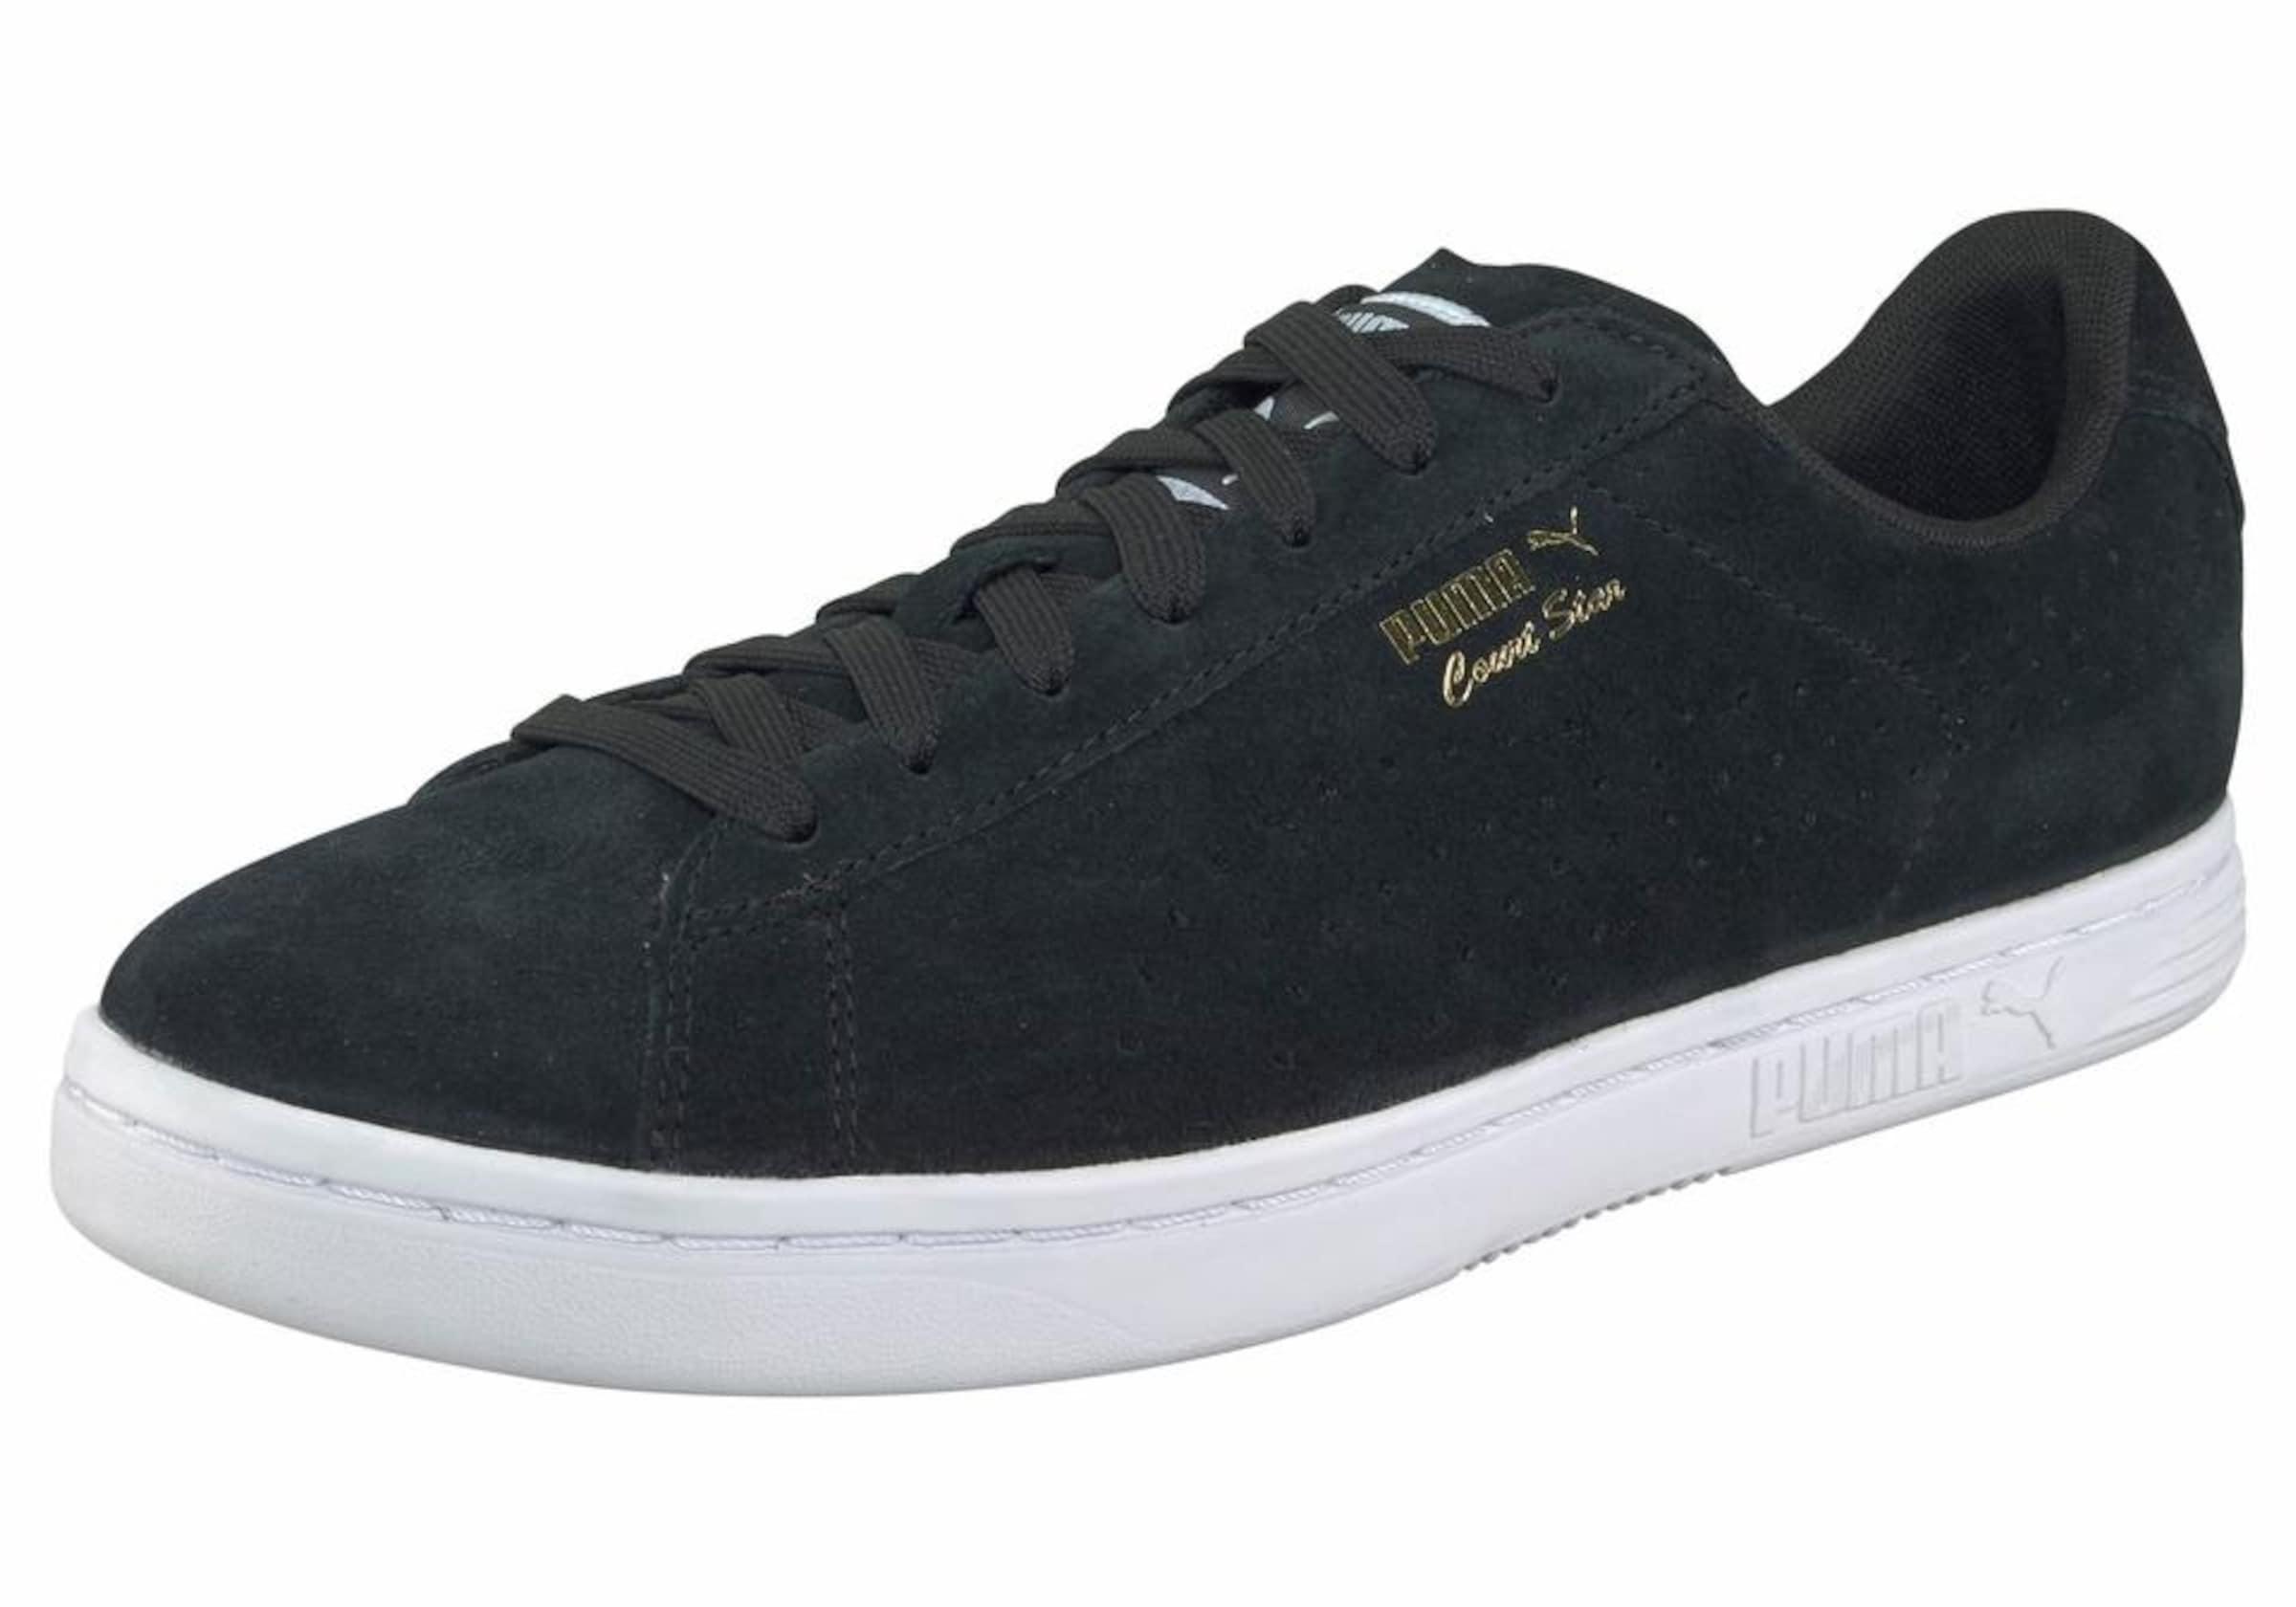 Puma Star Baskets Basses Noir Suede' 'court En rfraxngqR